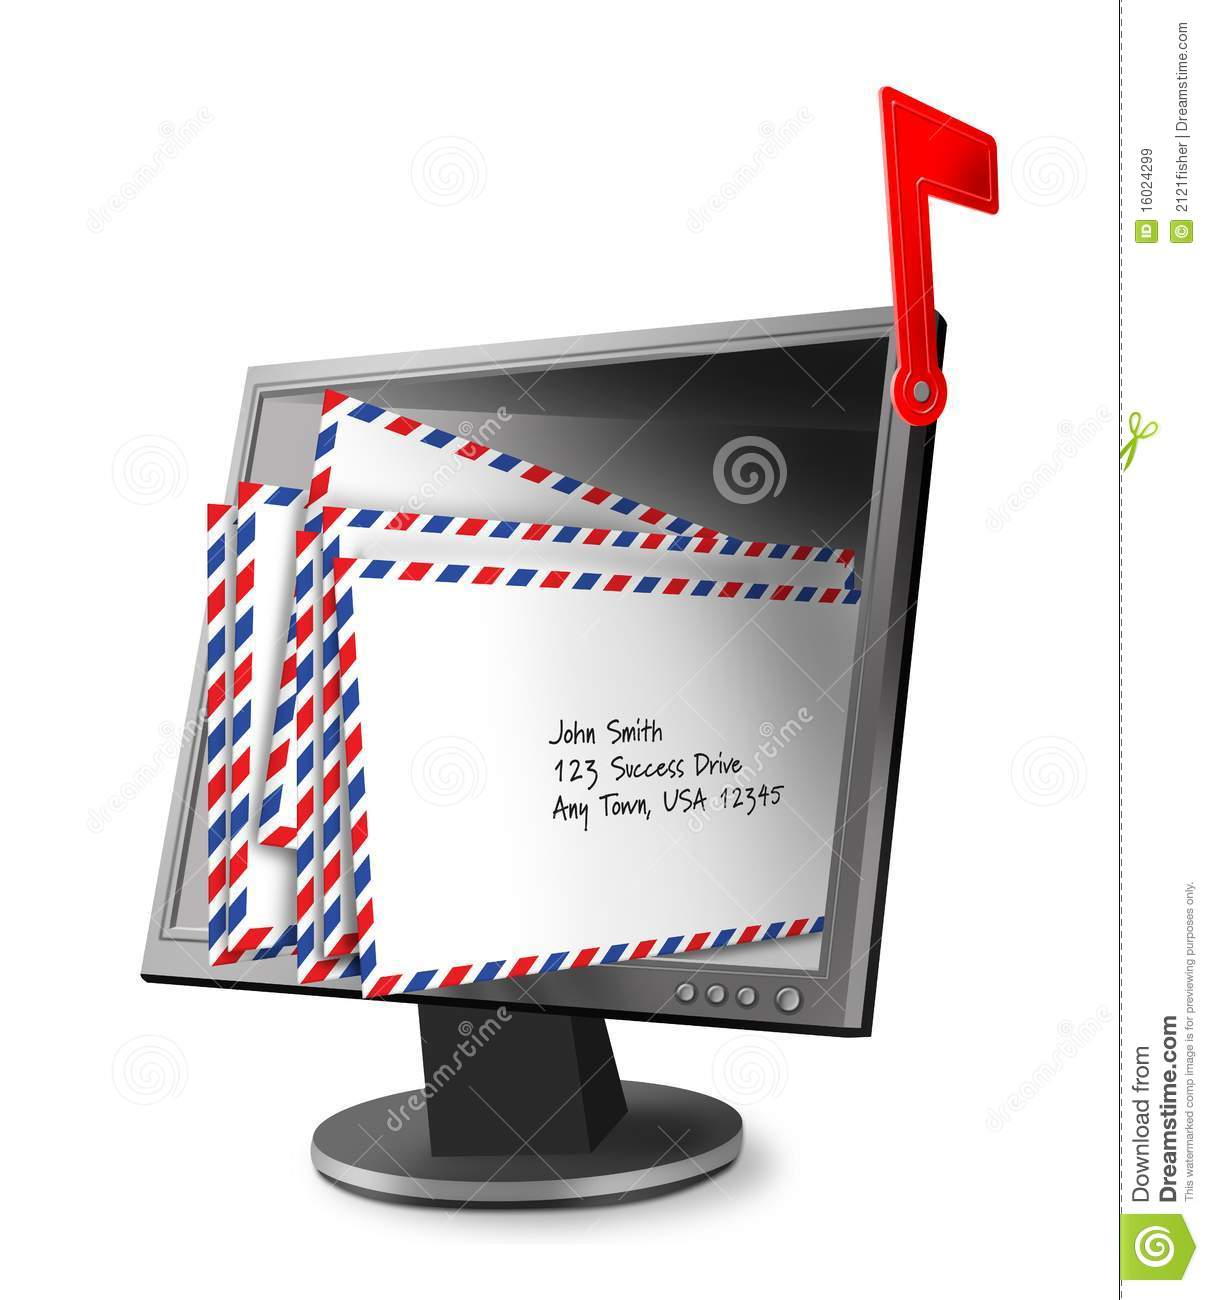 Digital Illustration Of Full Mailbox Using A Computer Monitor Filled